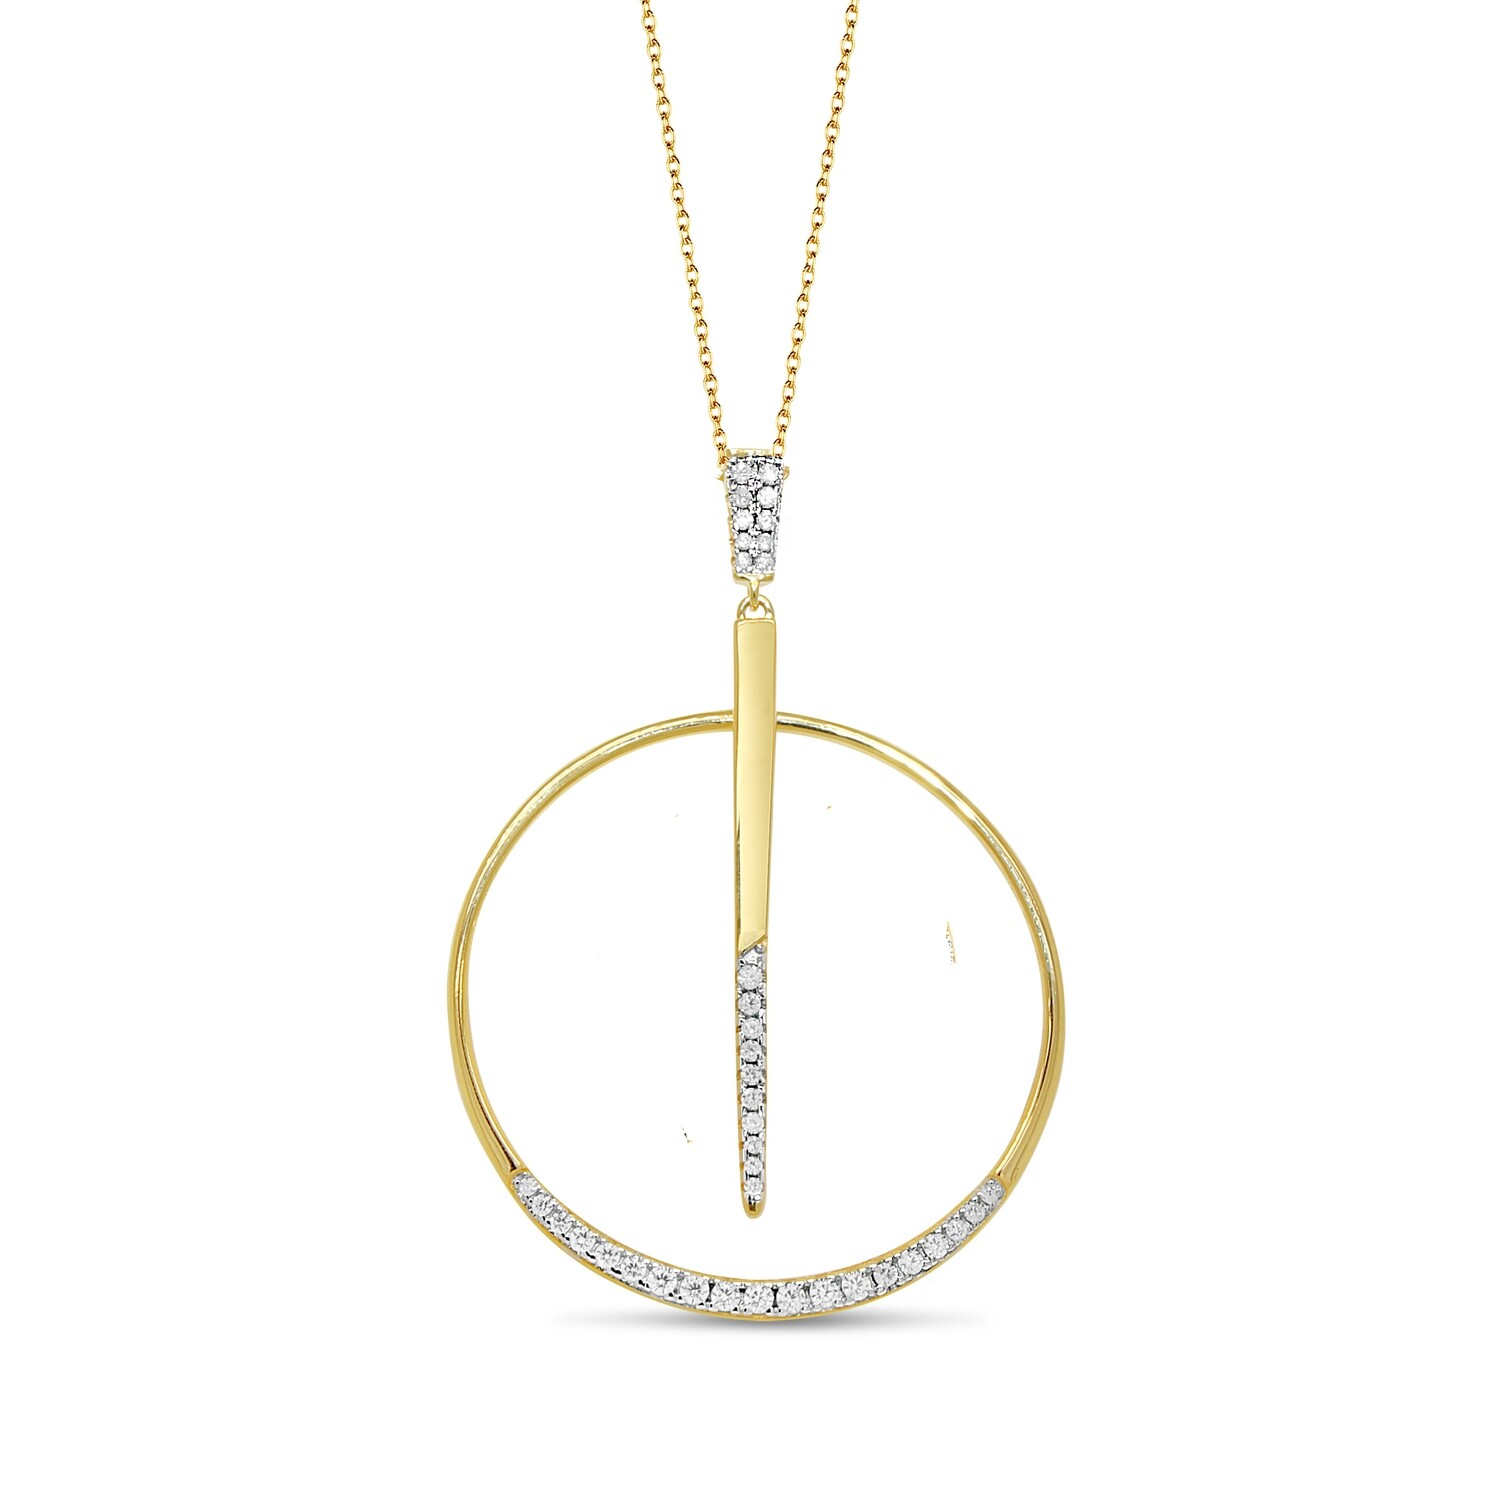 P2162G Gold plated pendant set with white cz